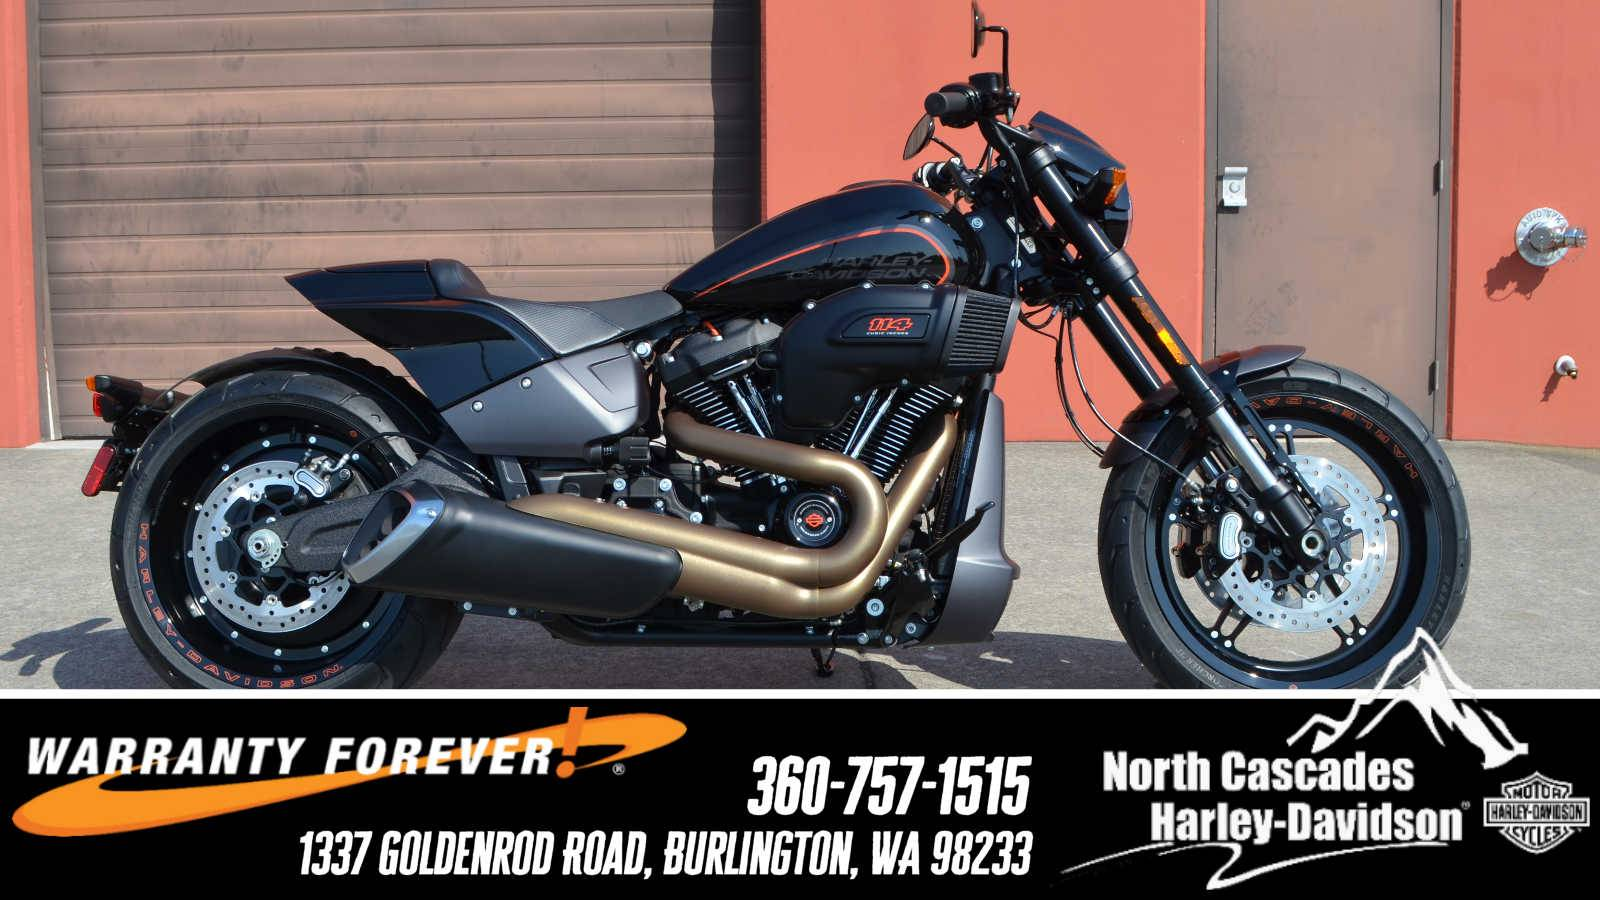 Customized New Fxdr 114 New Models Harley Davidson 2019: New 2019 Harley-Davidson FXDR™ 114